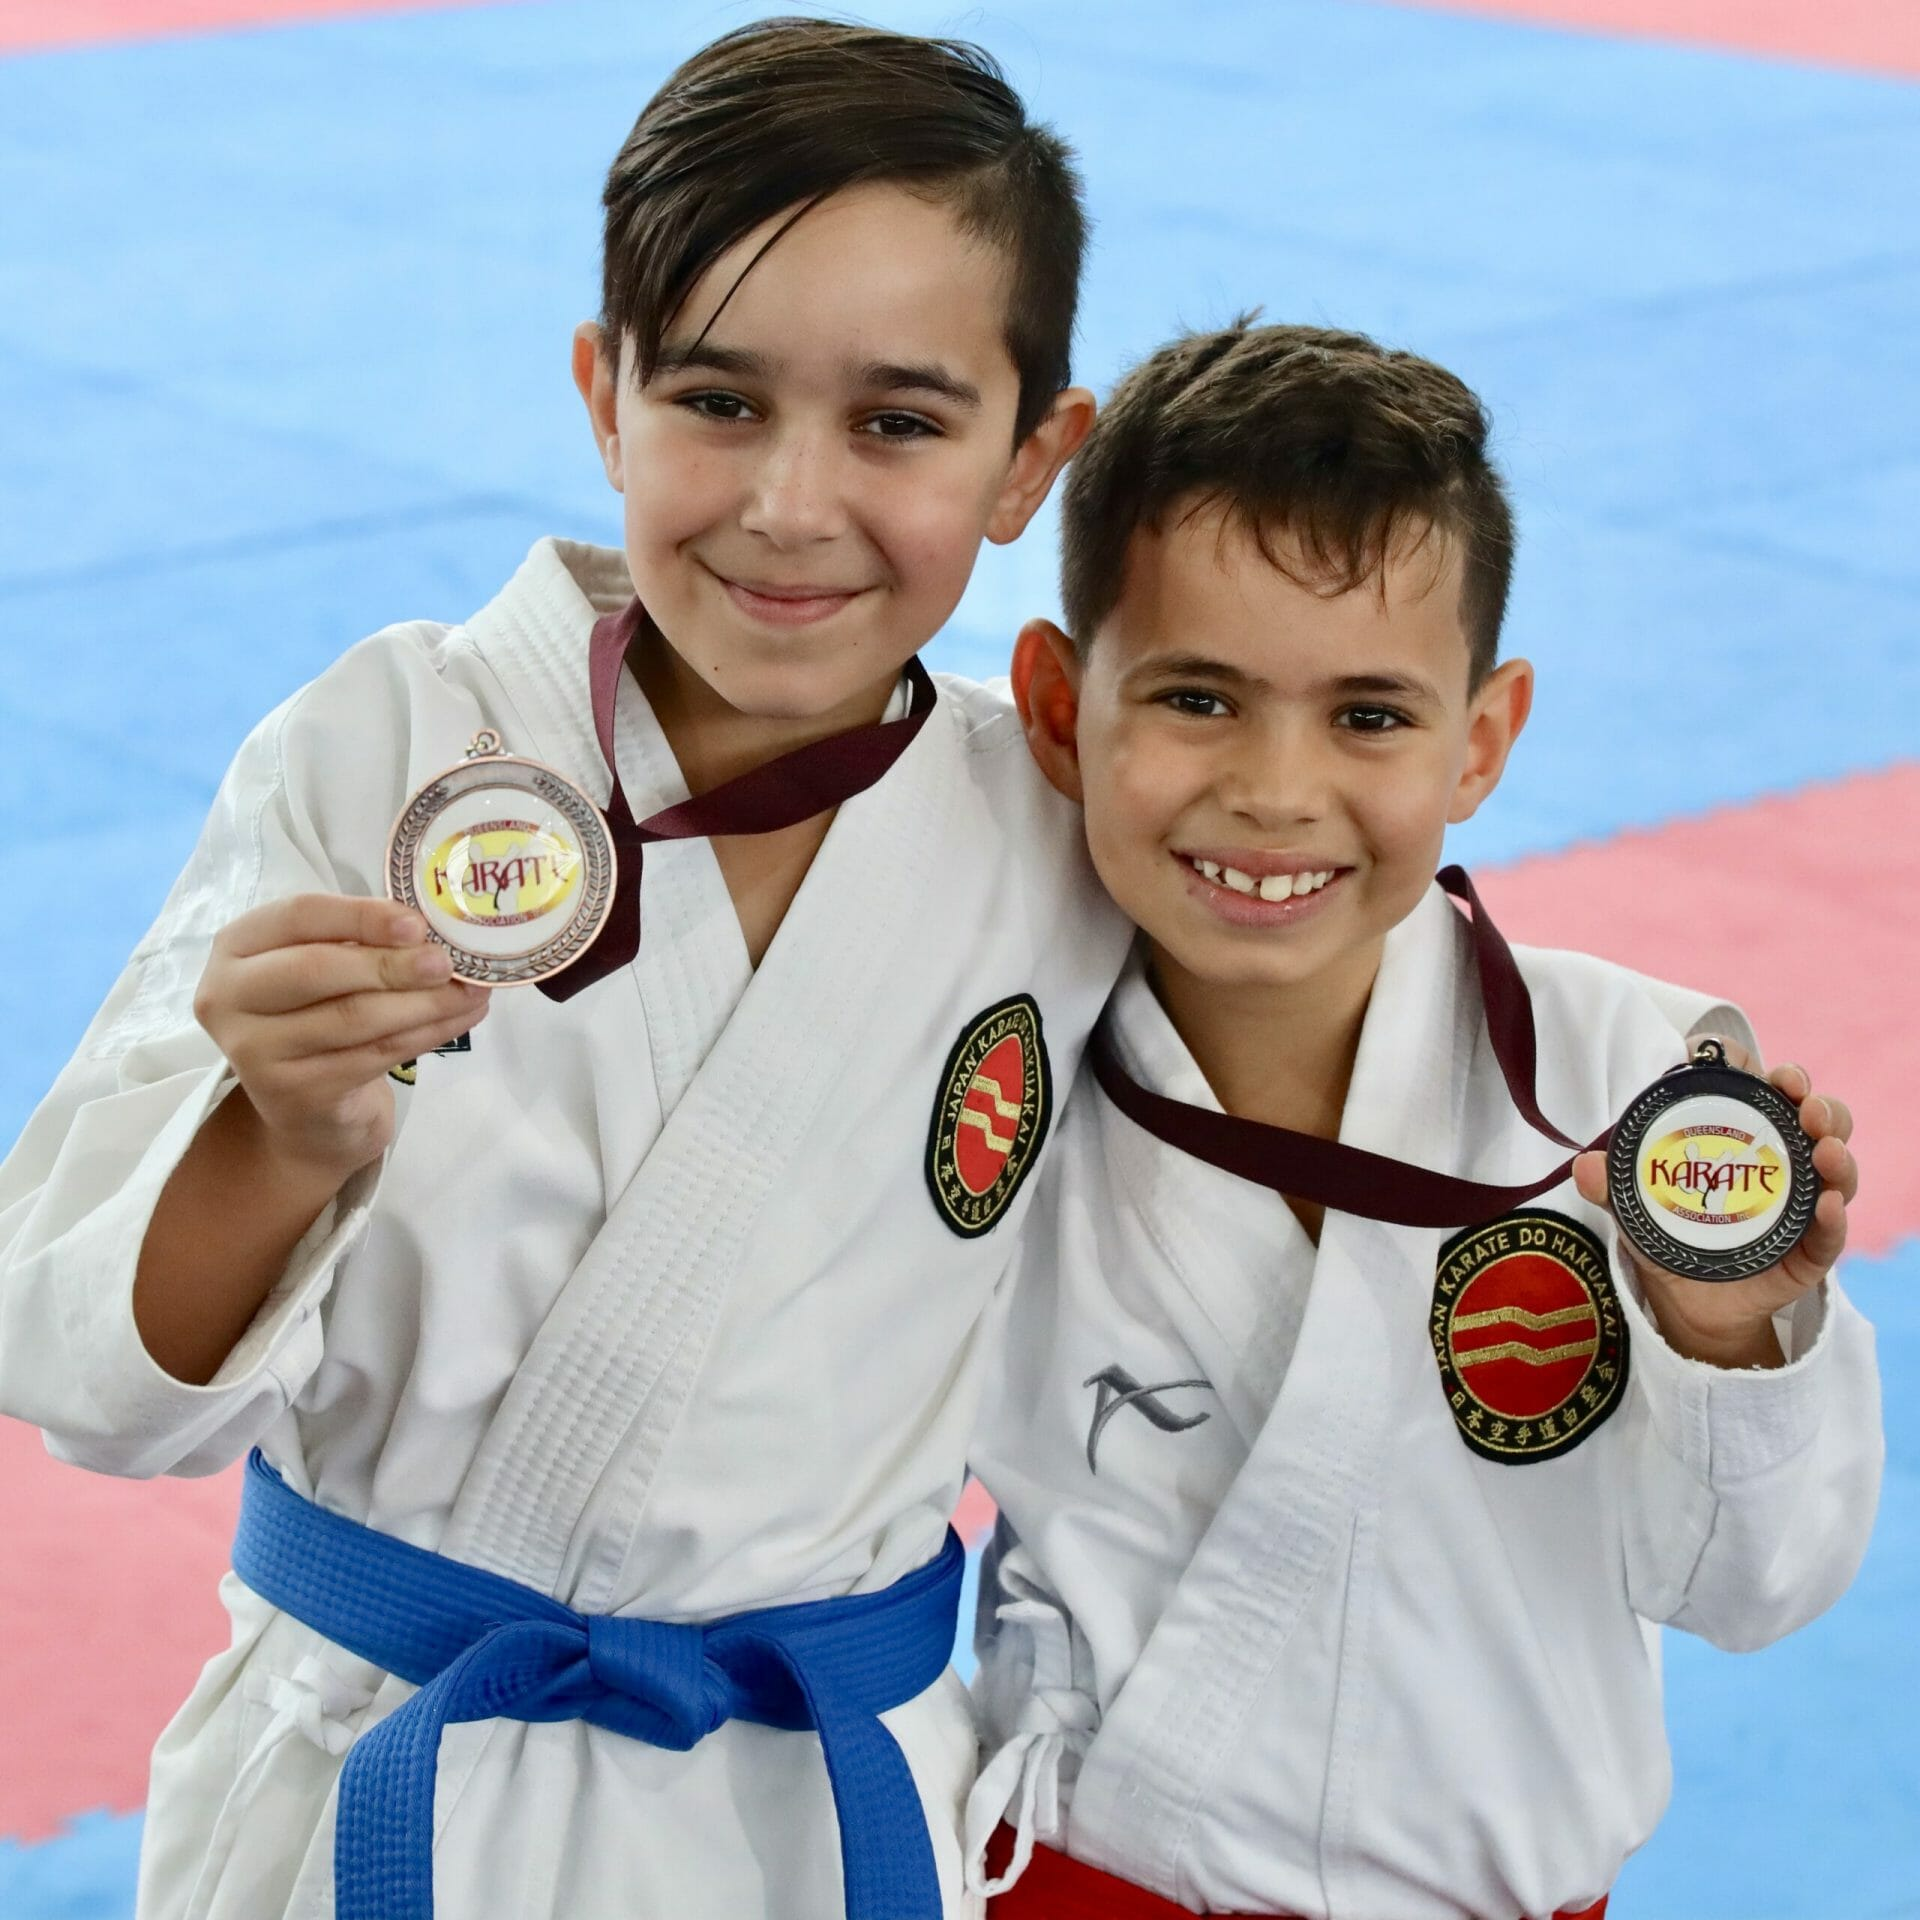 Karate competition AKF